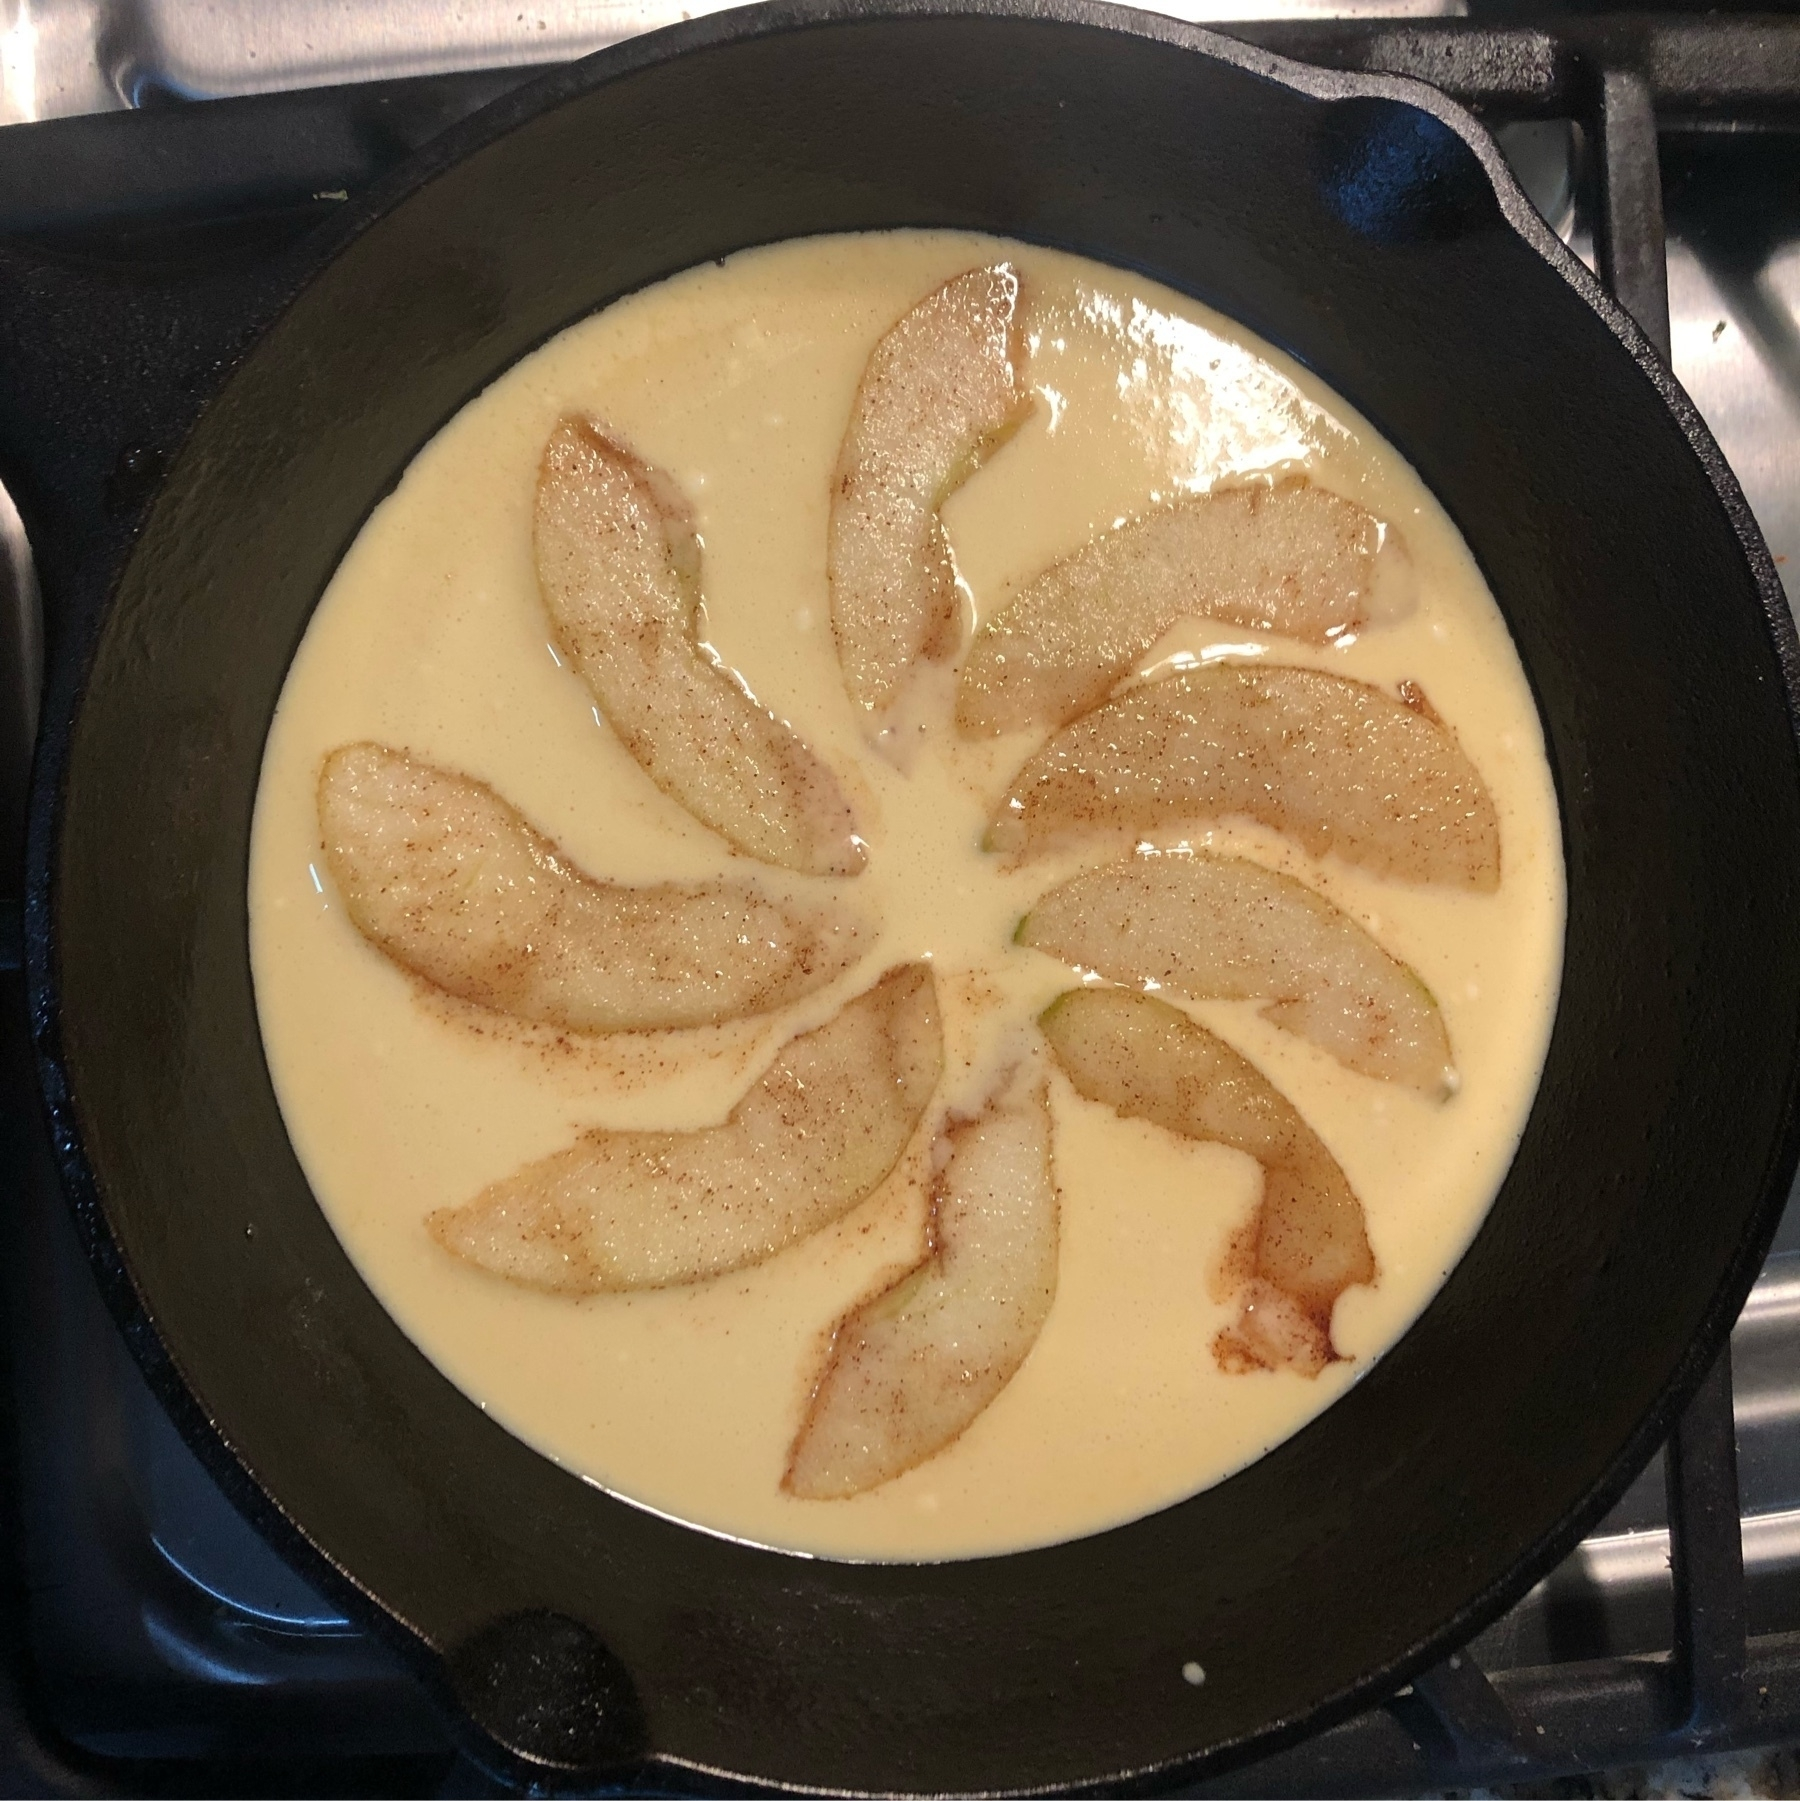 Uncooked pancake batter in a cast iron pan with apple slices fanned out in a flower shape.